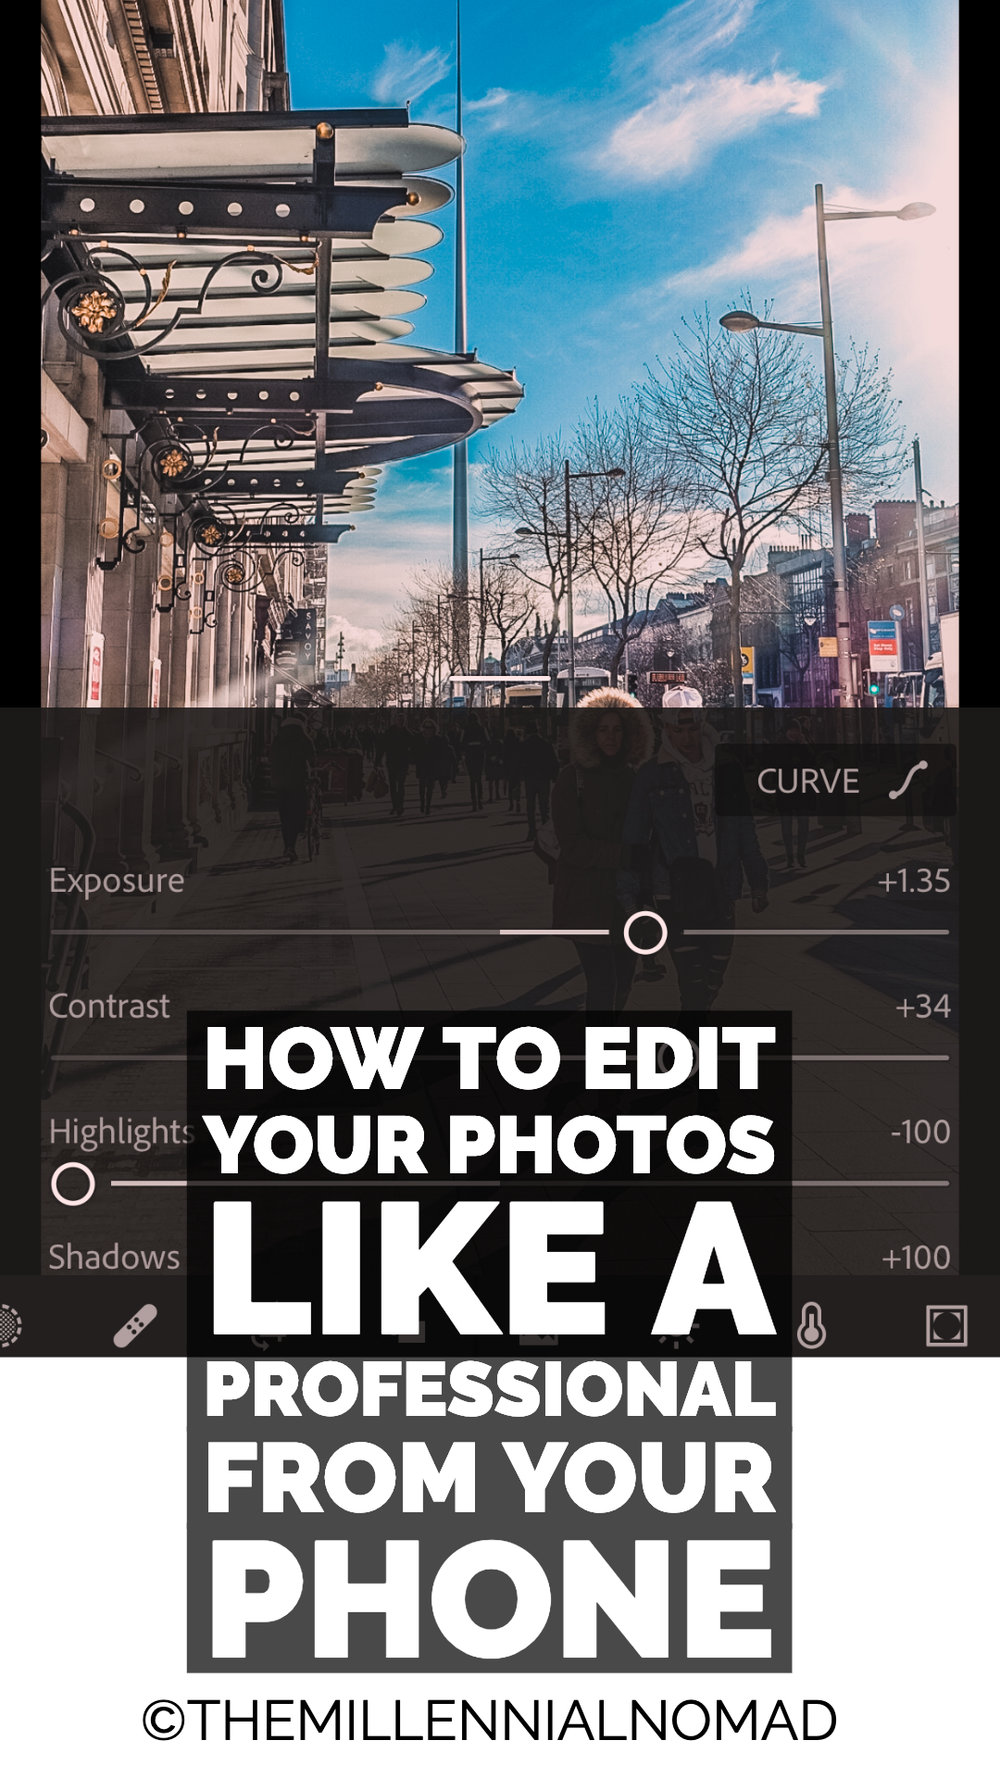 Are you tired of editing your photos on desktop. Wouldn't you prefer editing them on your phone and be able to share your photos quicker, whether it is for social media or a work assignment? Check out this article to learn how you can do just that using your phone only. #lightroomediting #lightroom #adobe #learnphotography #photographyediting